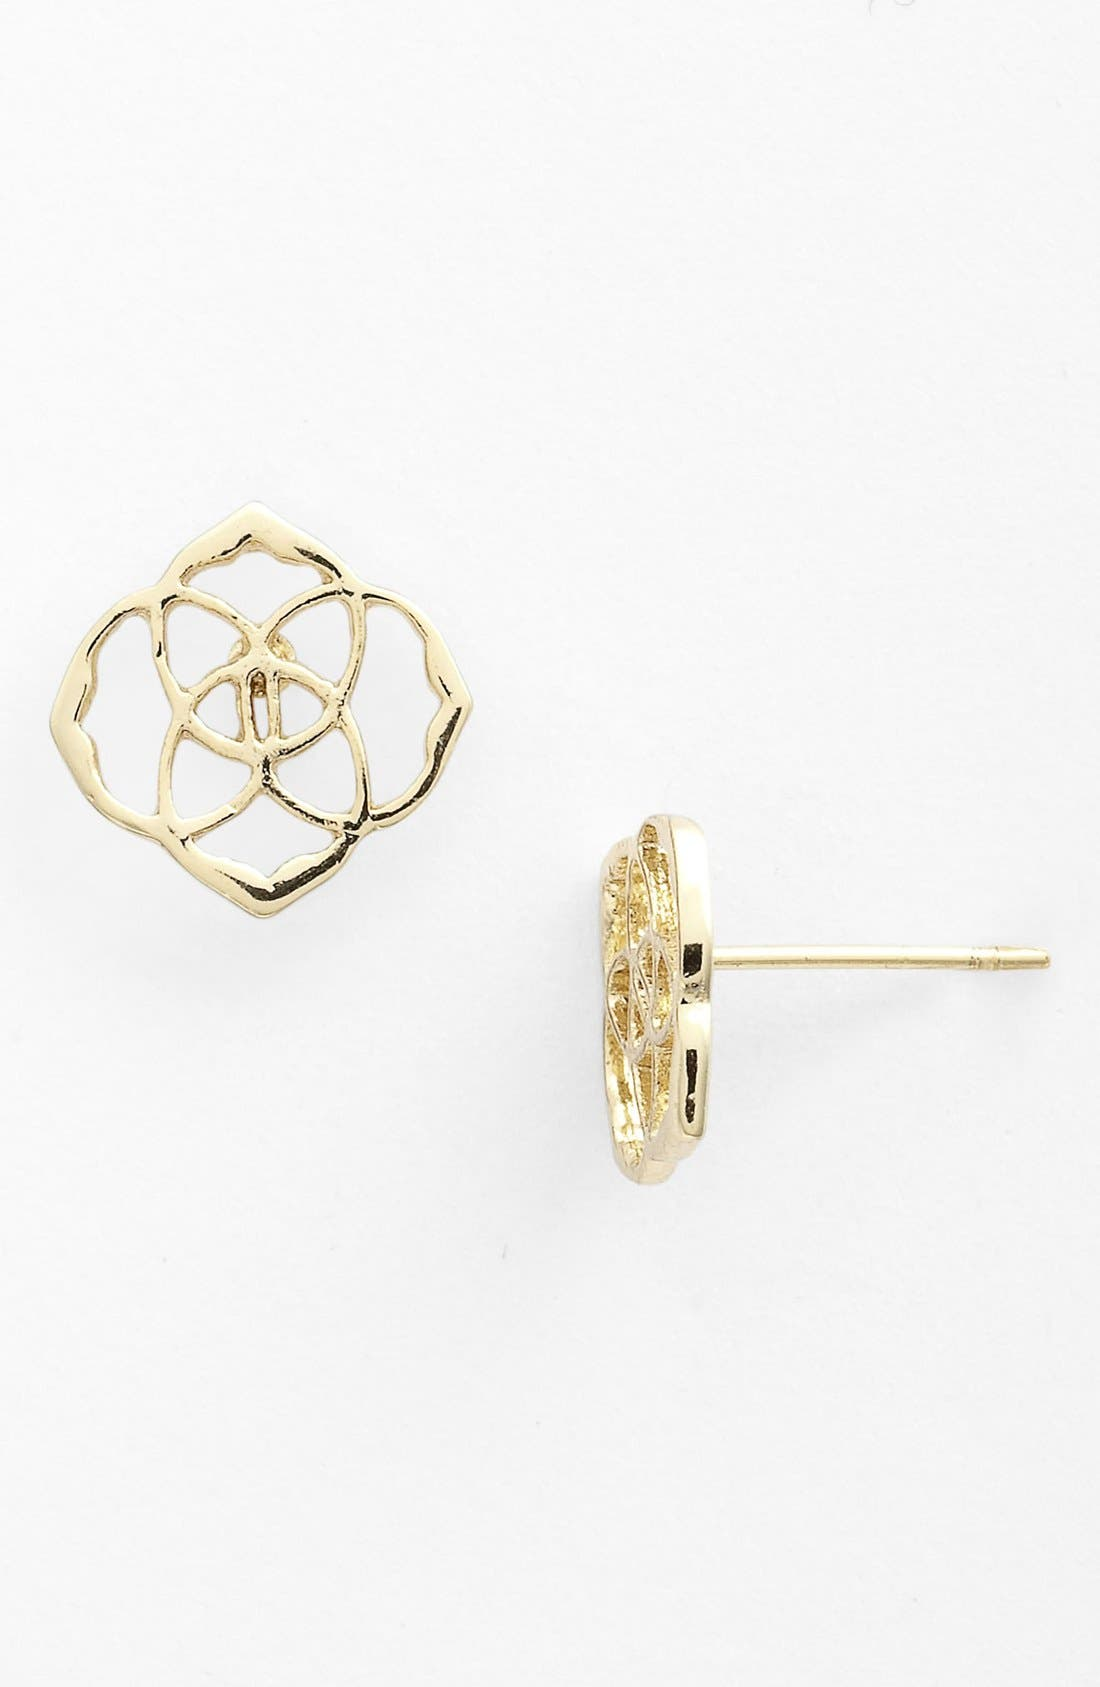 Main Image - Kendra Scott 'Dira' Stud Earrings